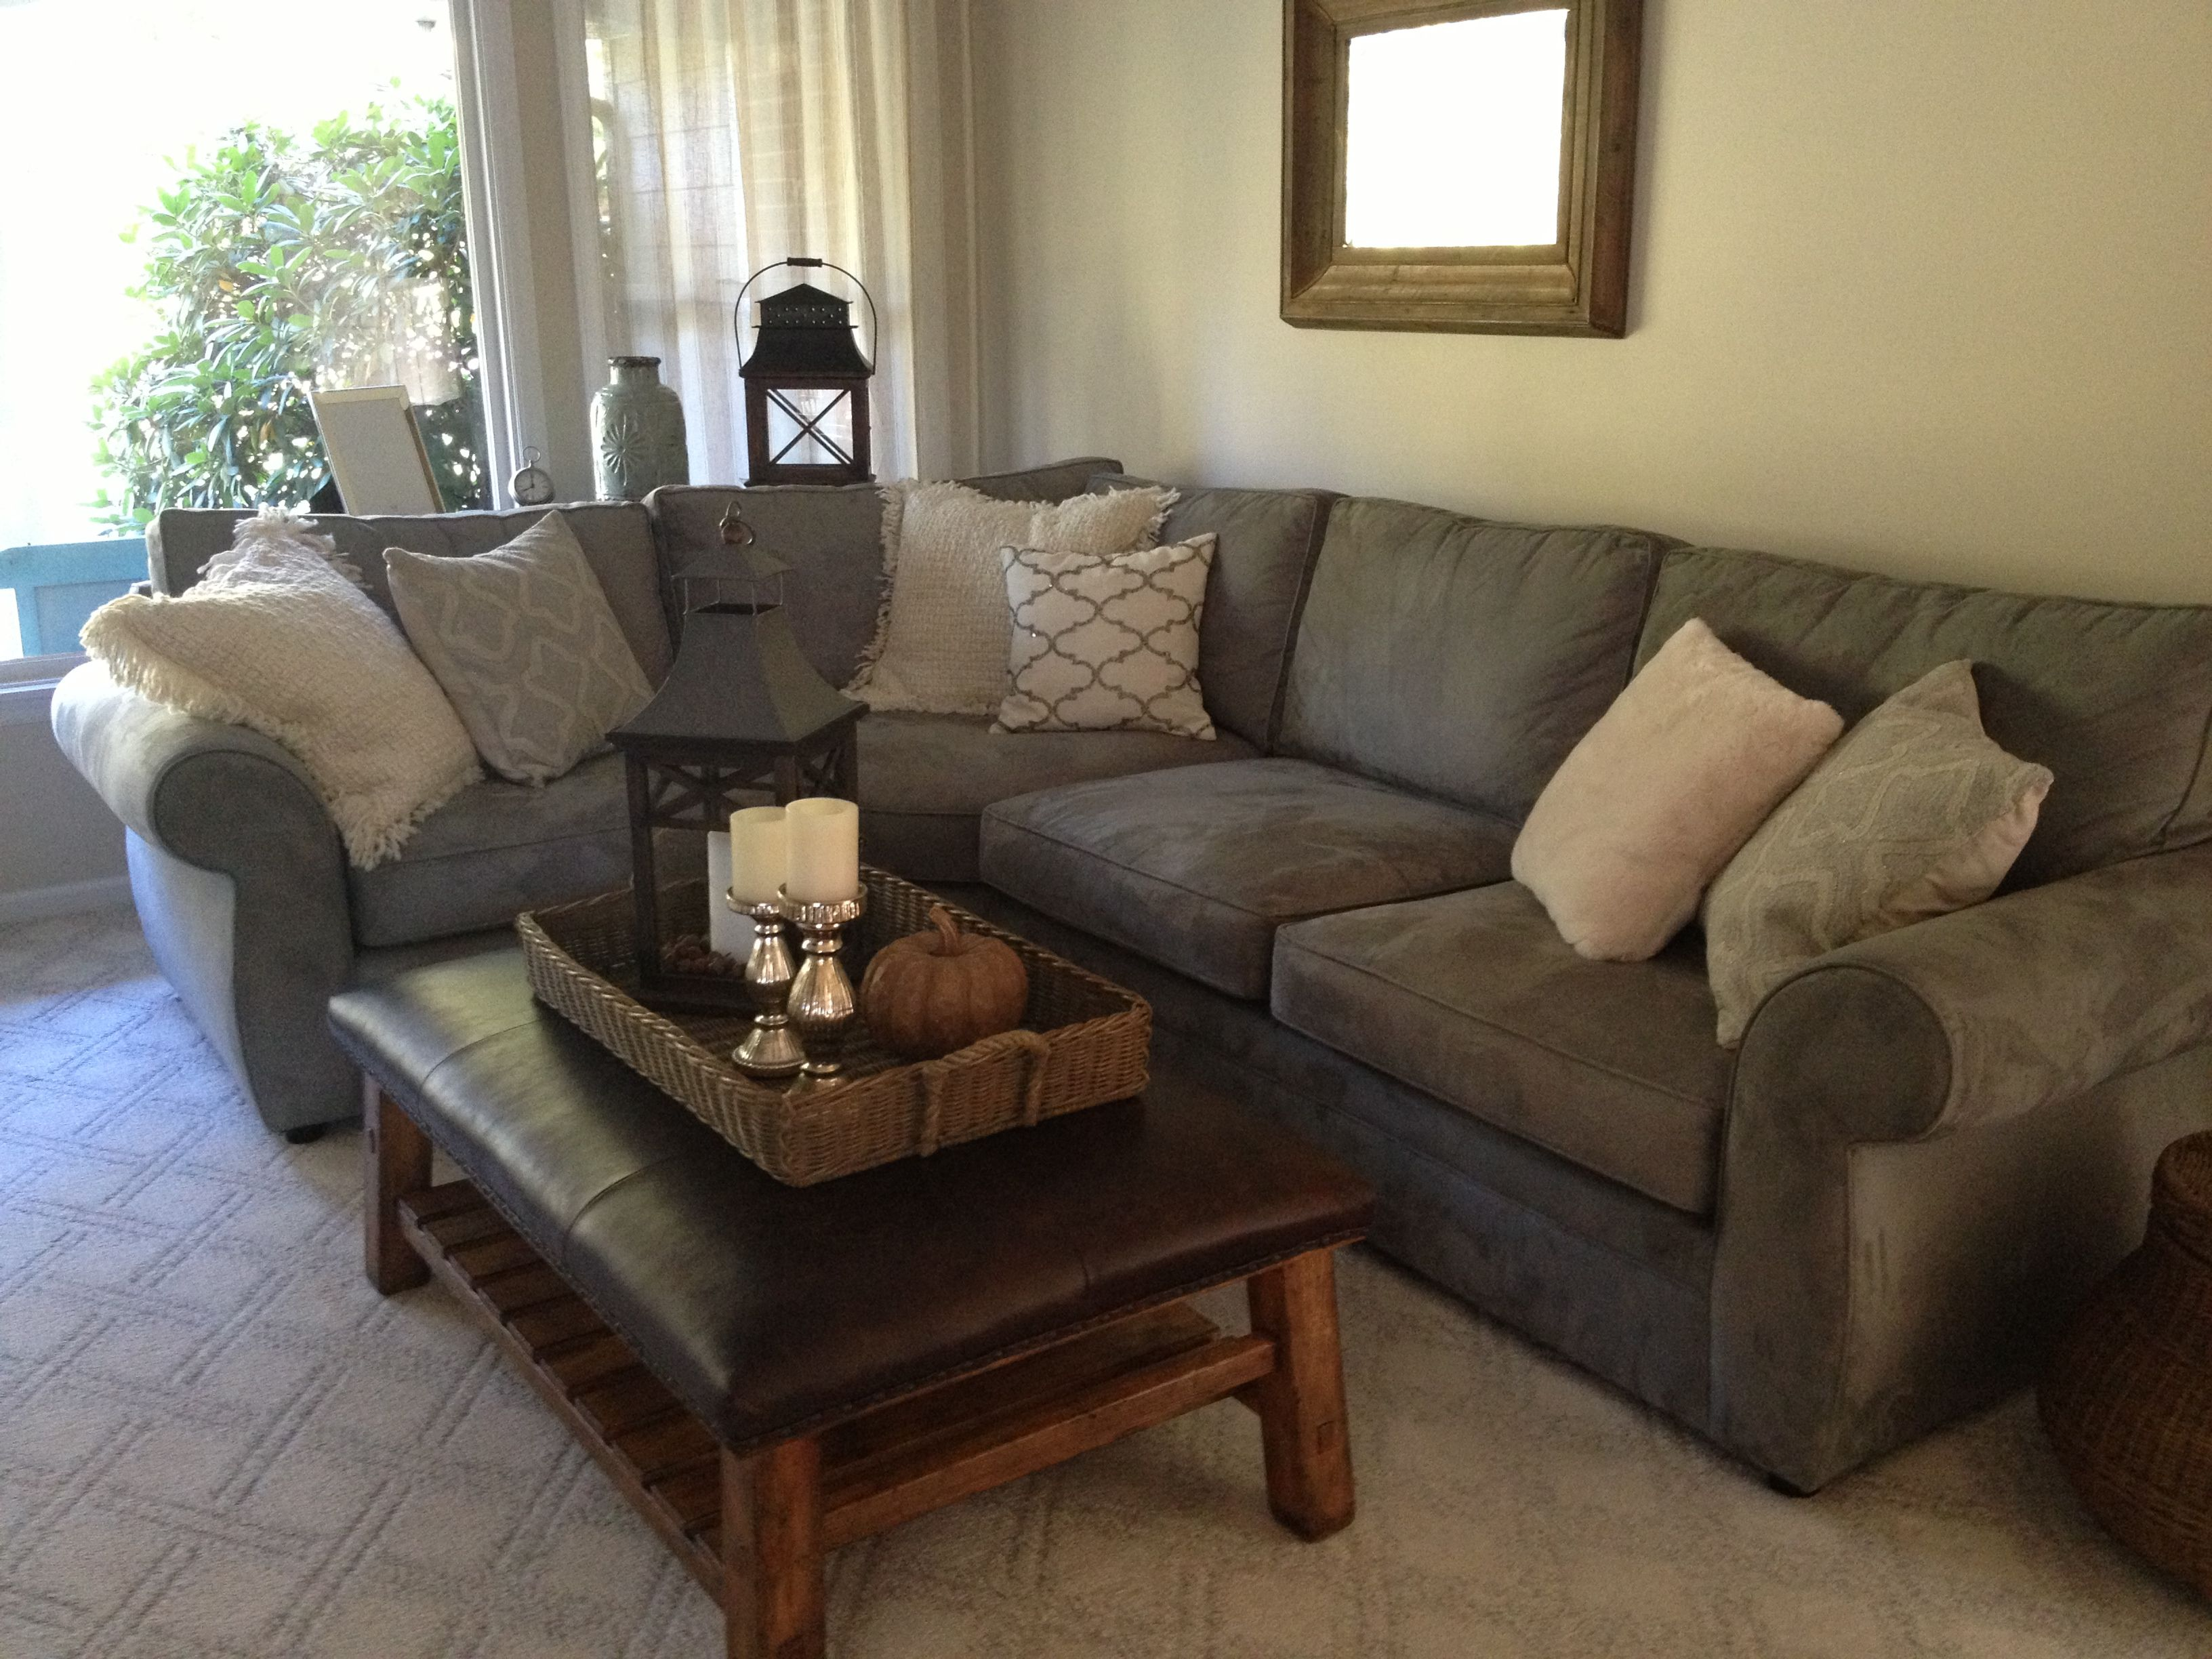 Pottery barn pearce couch New Family Room Pinterest